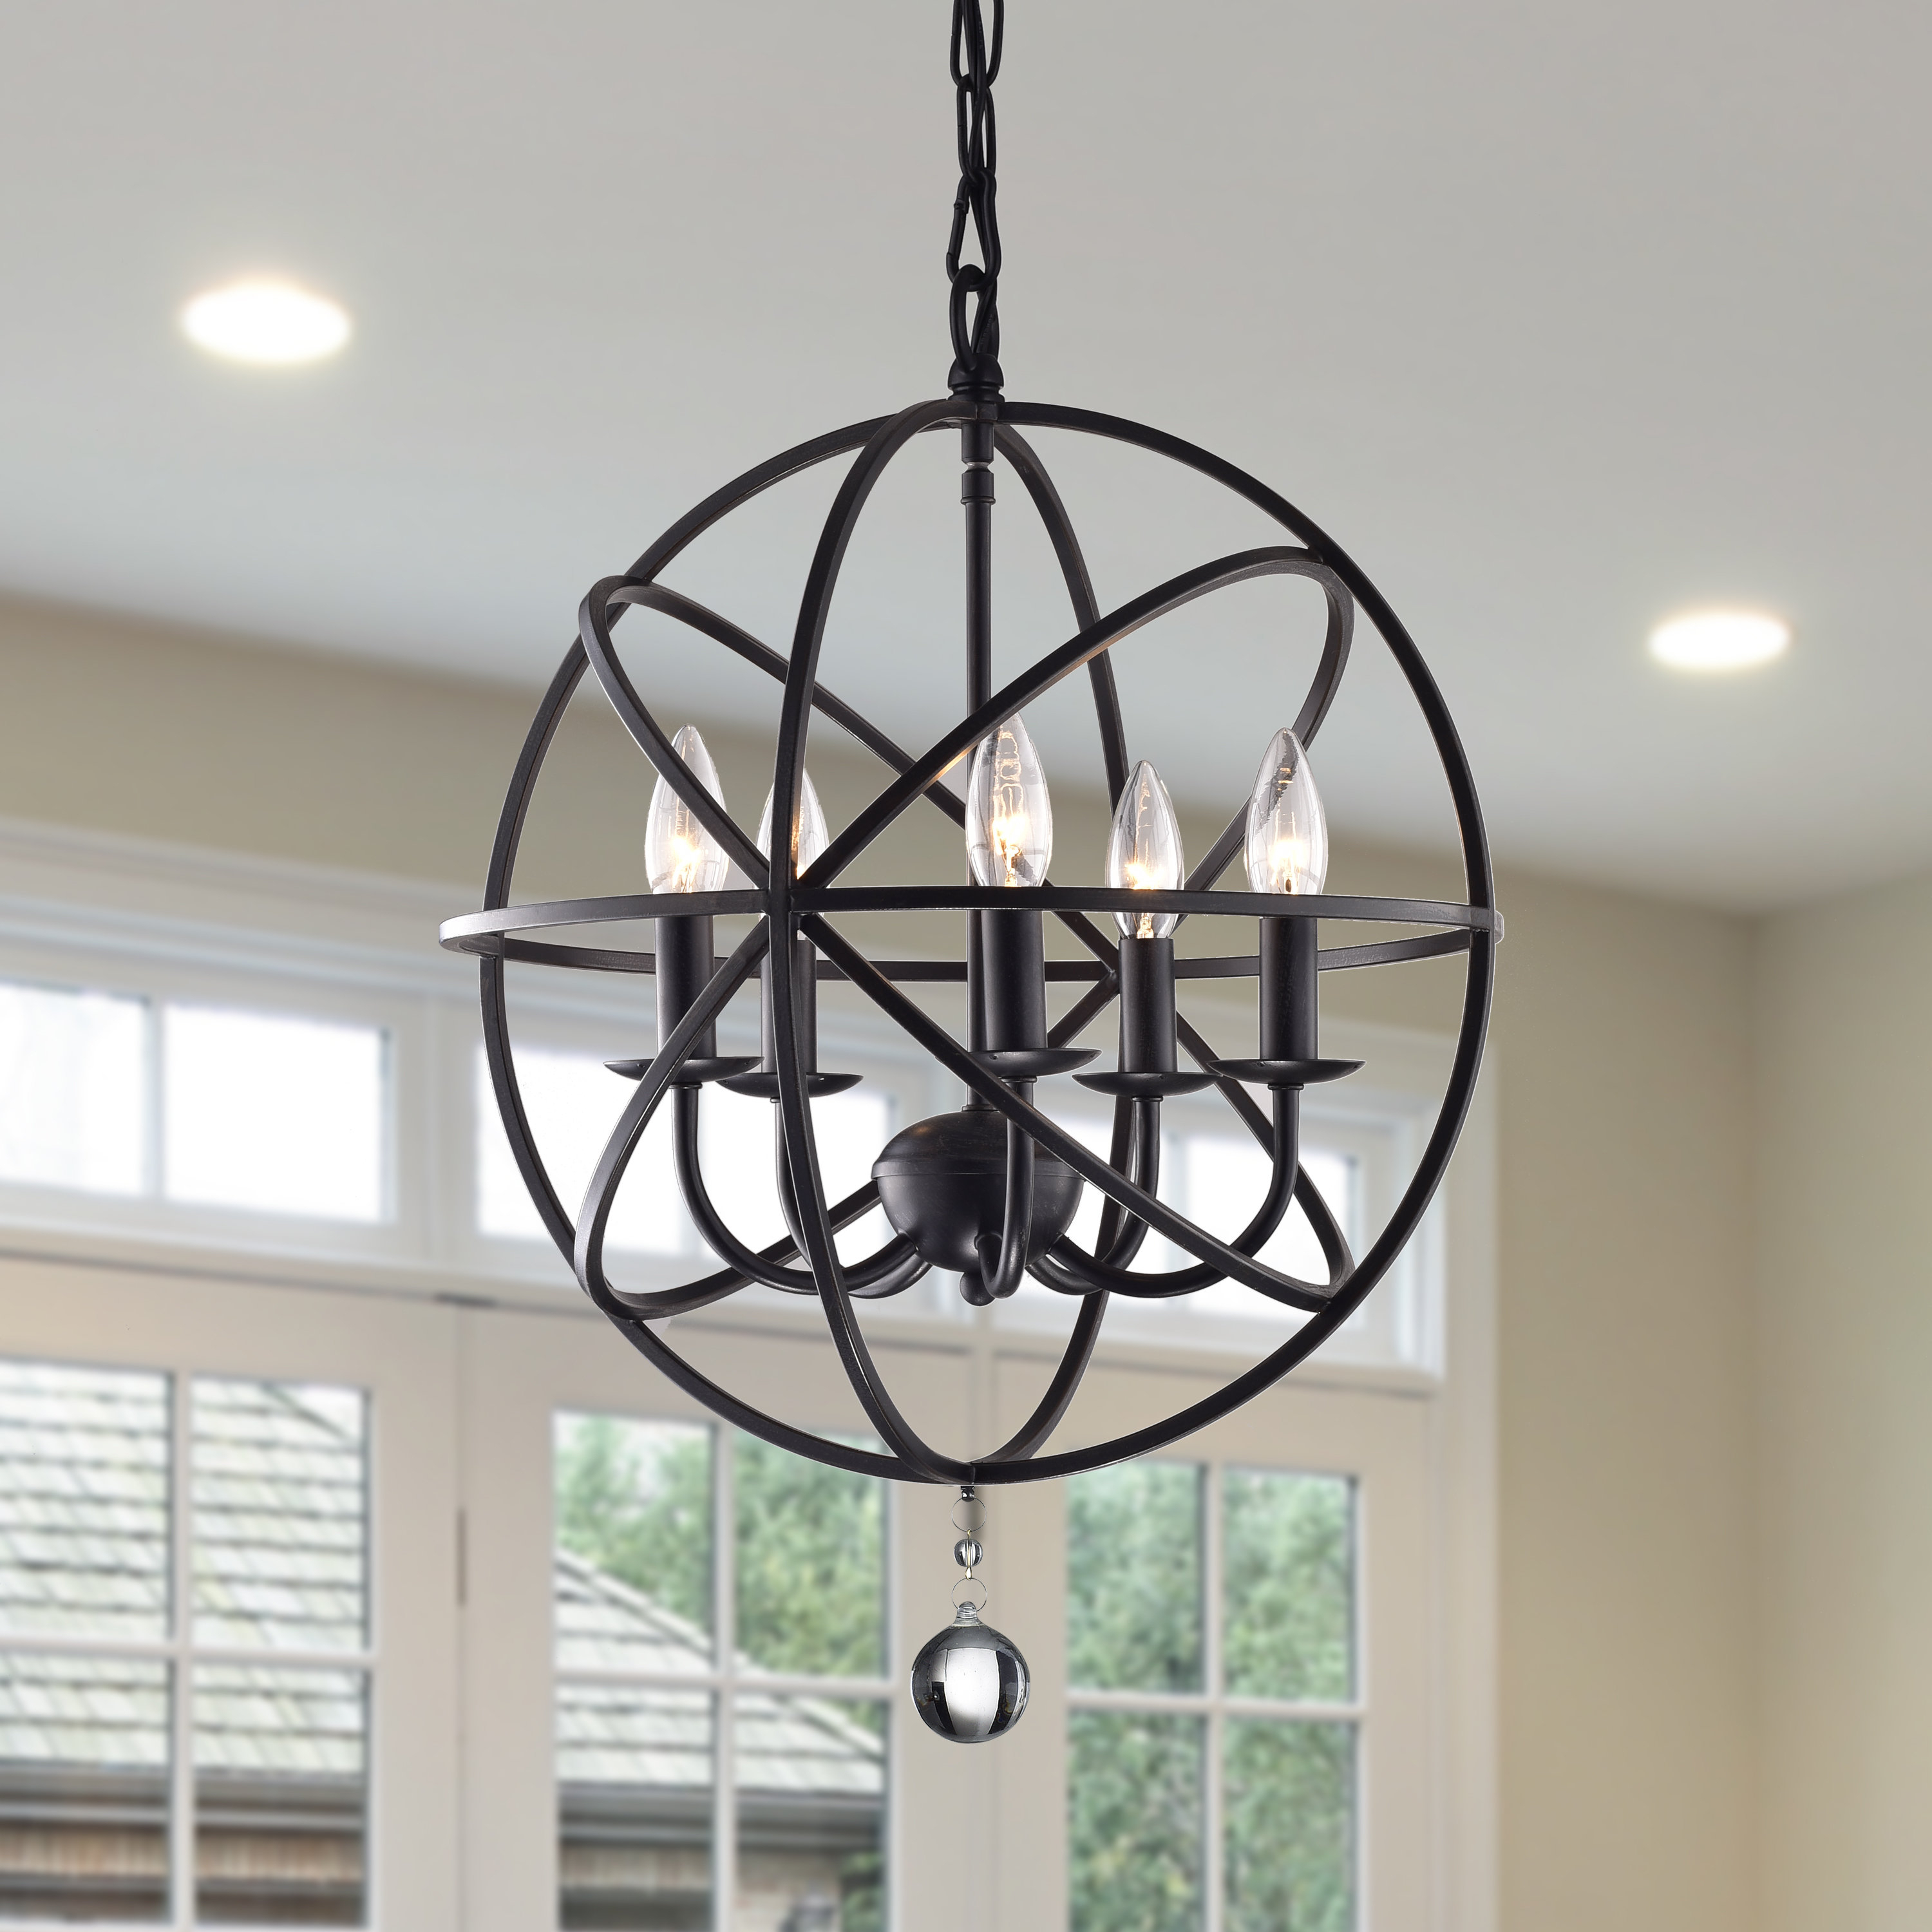 Most Recent Shipststour 3 Light Globe Chandeliers Intended For Verlene Foyer 5 Light Globe Chandelier & Reviews (View 7 of 25)